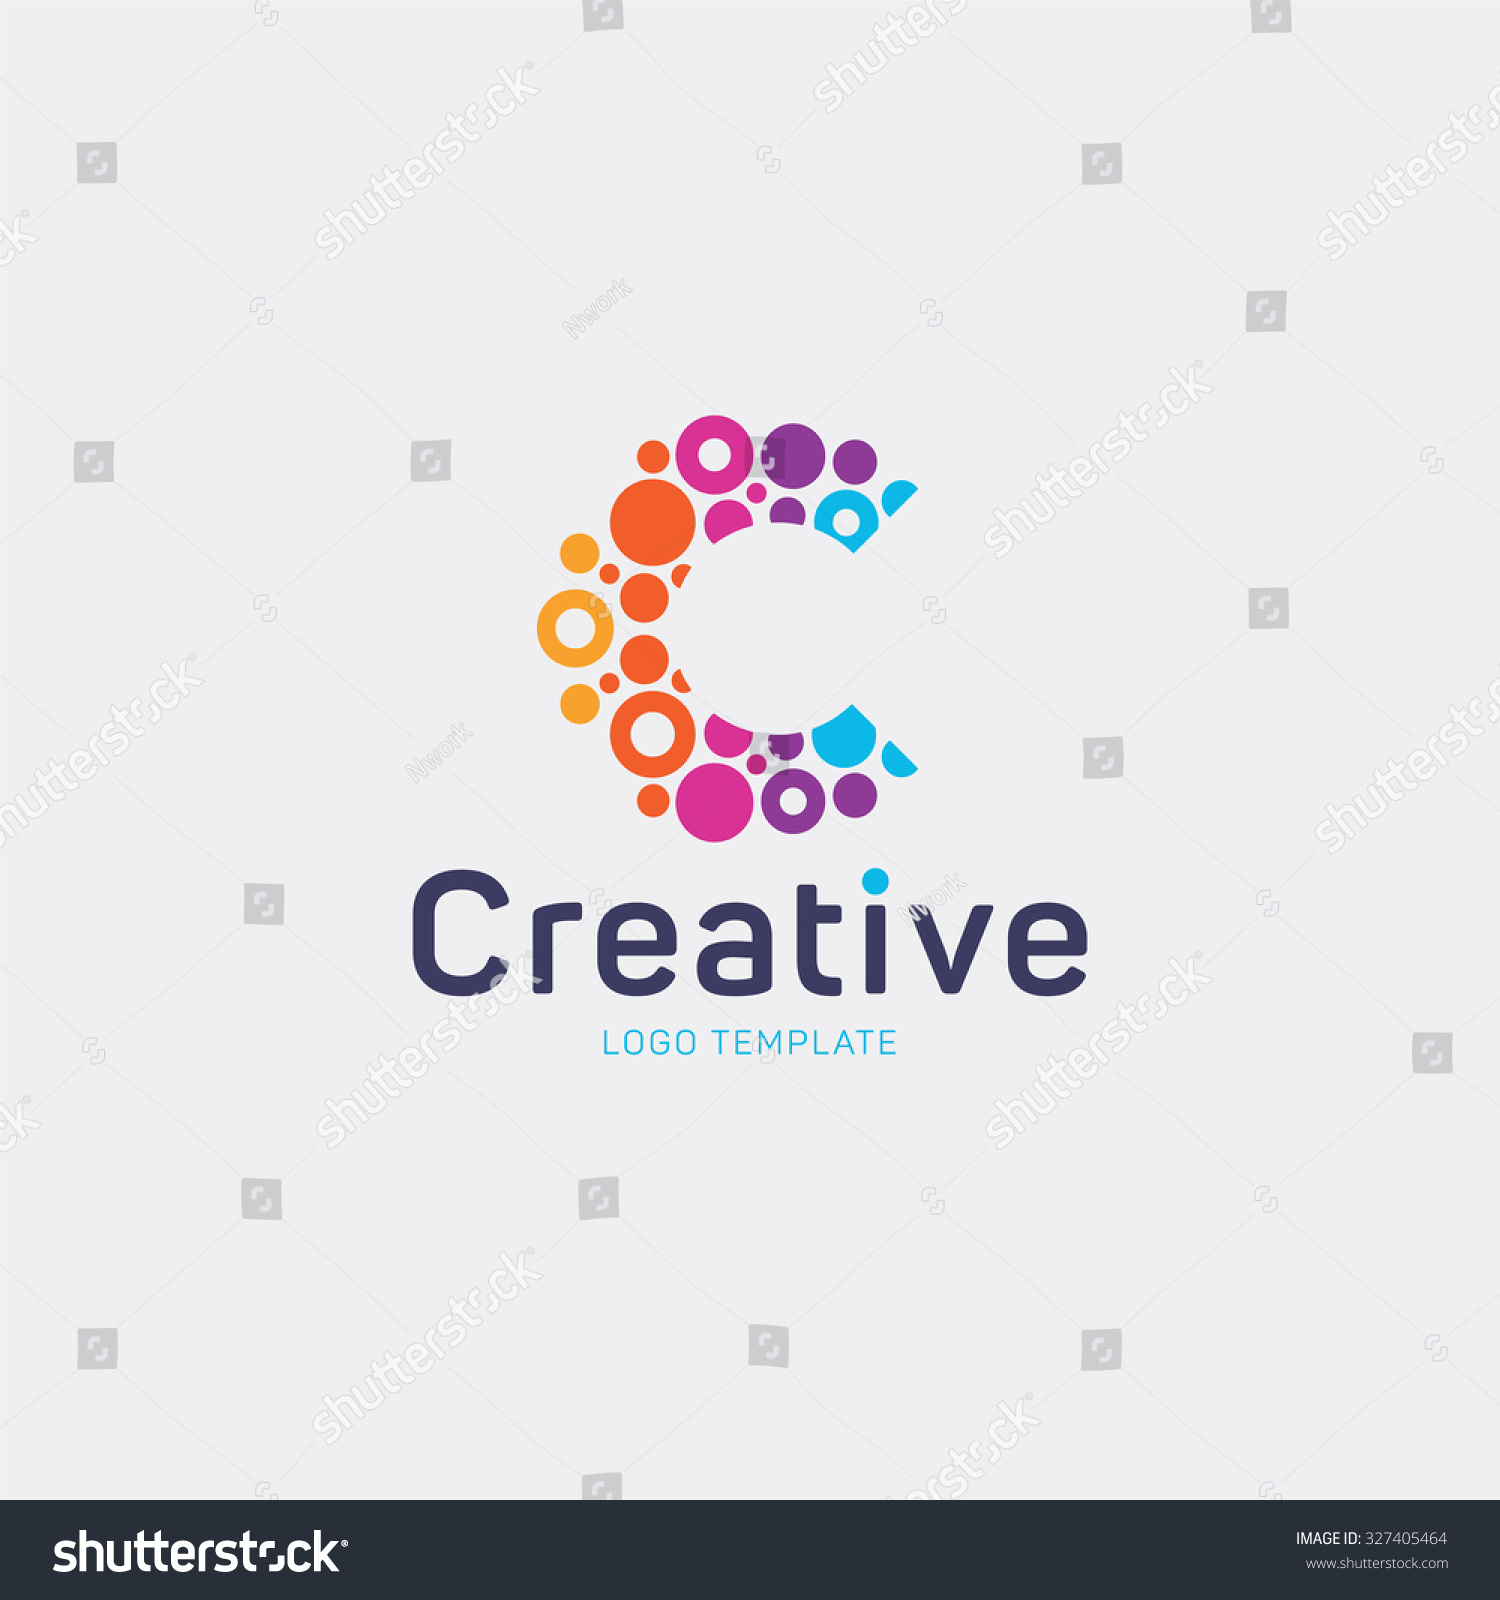 creative logo design letter c logo stock vector 327405464 shutterstock. Black Bedroom Furniture Sets. Home Design Ideas